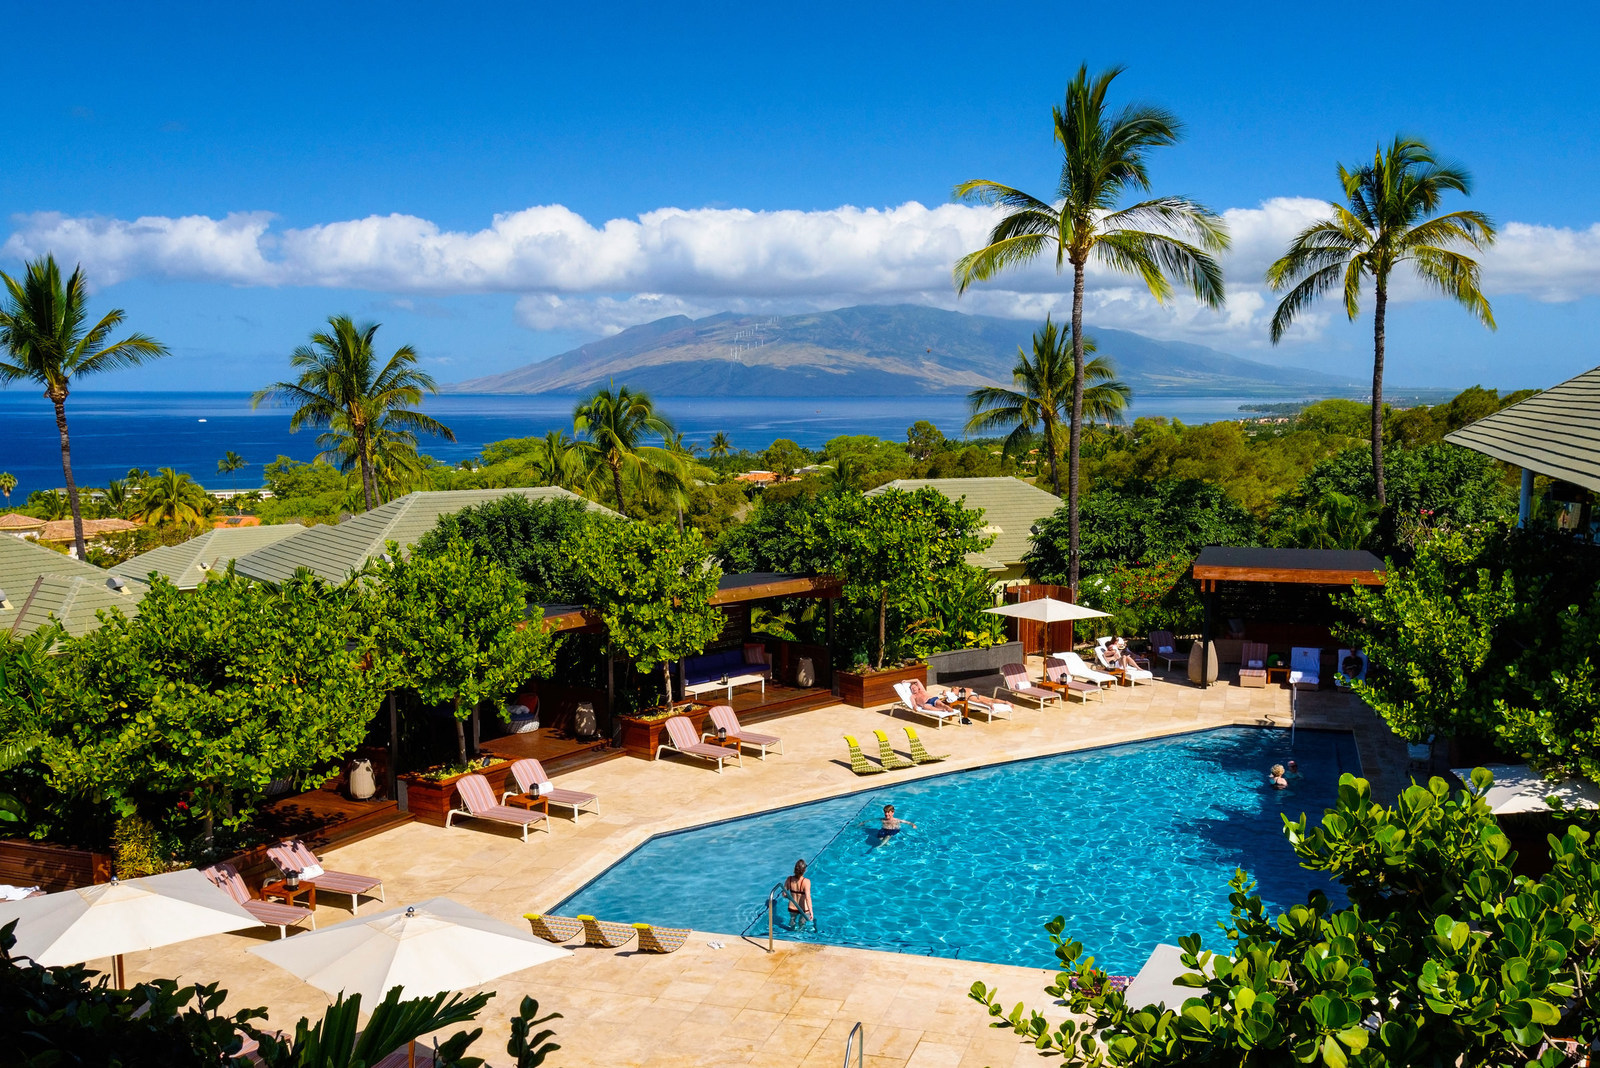 Maui Celebration Suites by Hotel Wailea